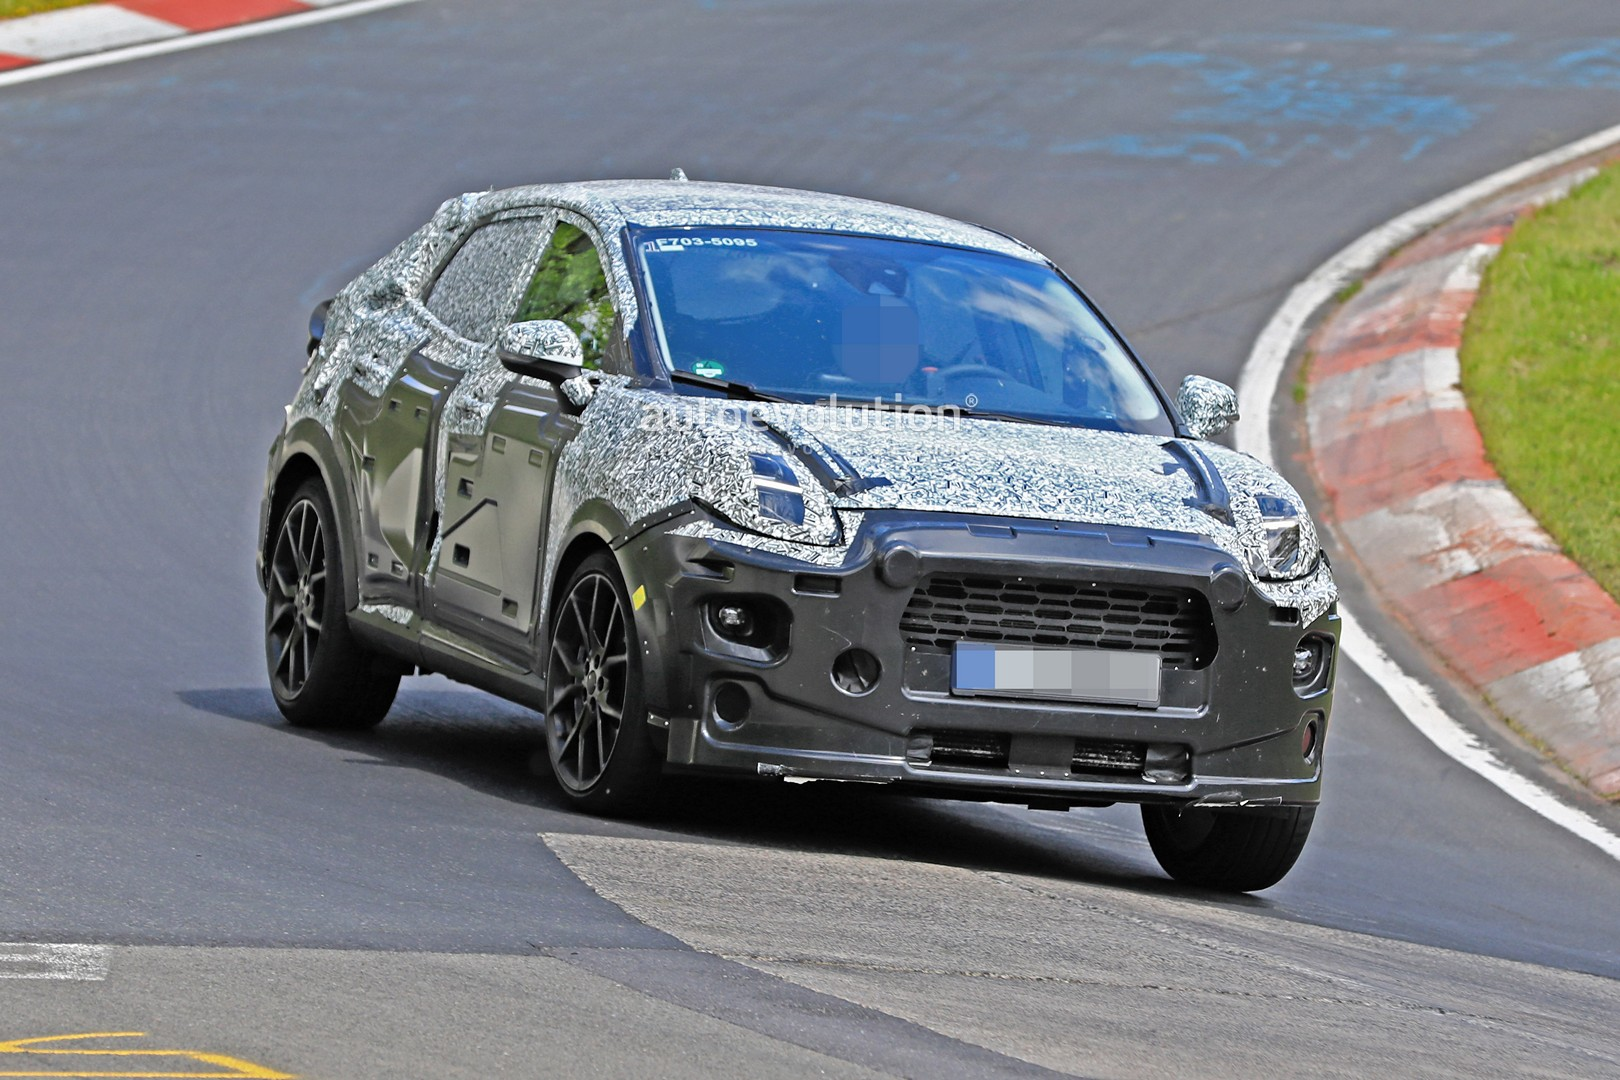 ford-puma-suv-spied-at-the-nurburgring-coming-in-2020-with-155-hp-hybrid-tech-134441_1